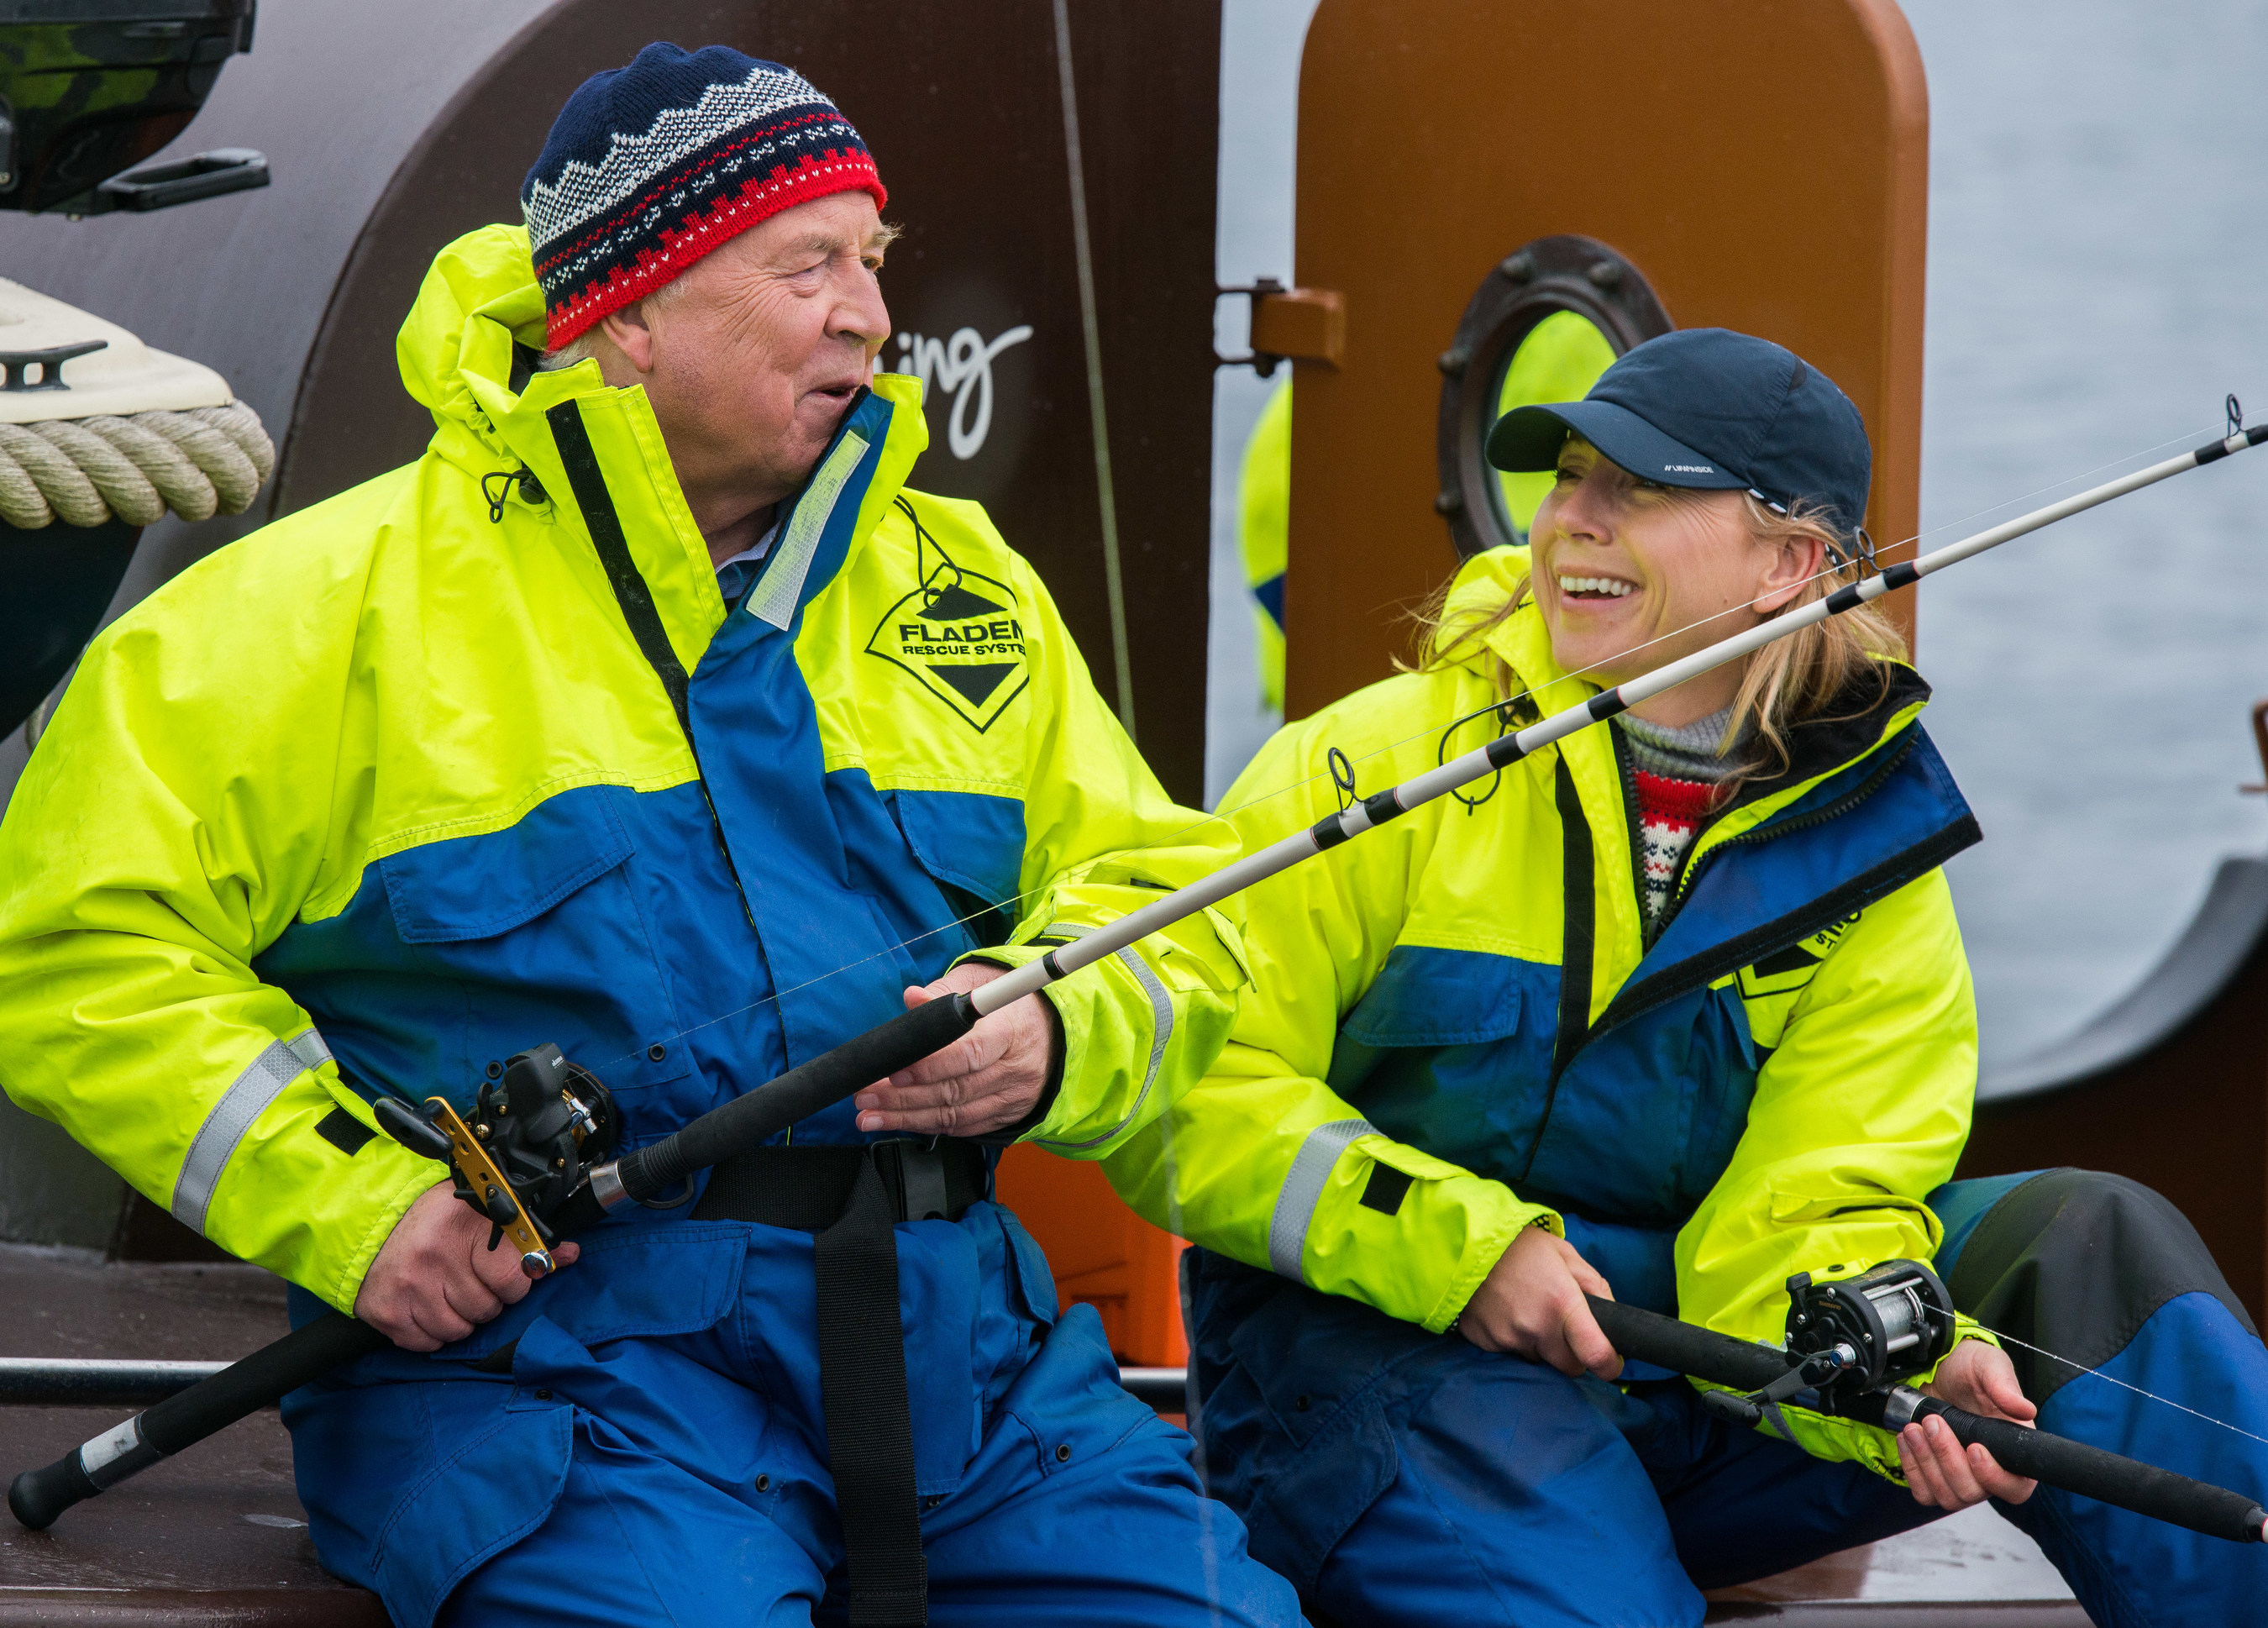 Viking Cruises founder and chairman Torstein Hagen and his daughter, Karine Hagen, fishing off the coast of Norway. Torstein Hagen, who is a Norwegian native, was visiting the touring the country to commemorate the arrival of the company's new ship, Viking Sea, in five new Norwegian ports of call. Karine Hagen, who serves as Senior Vice President at Viking, is also the godmother of Viking Sea.